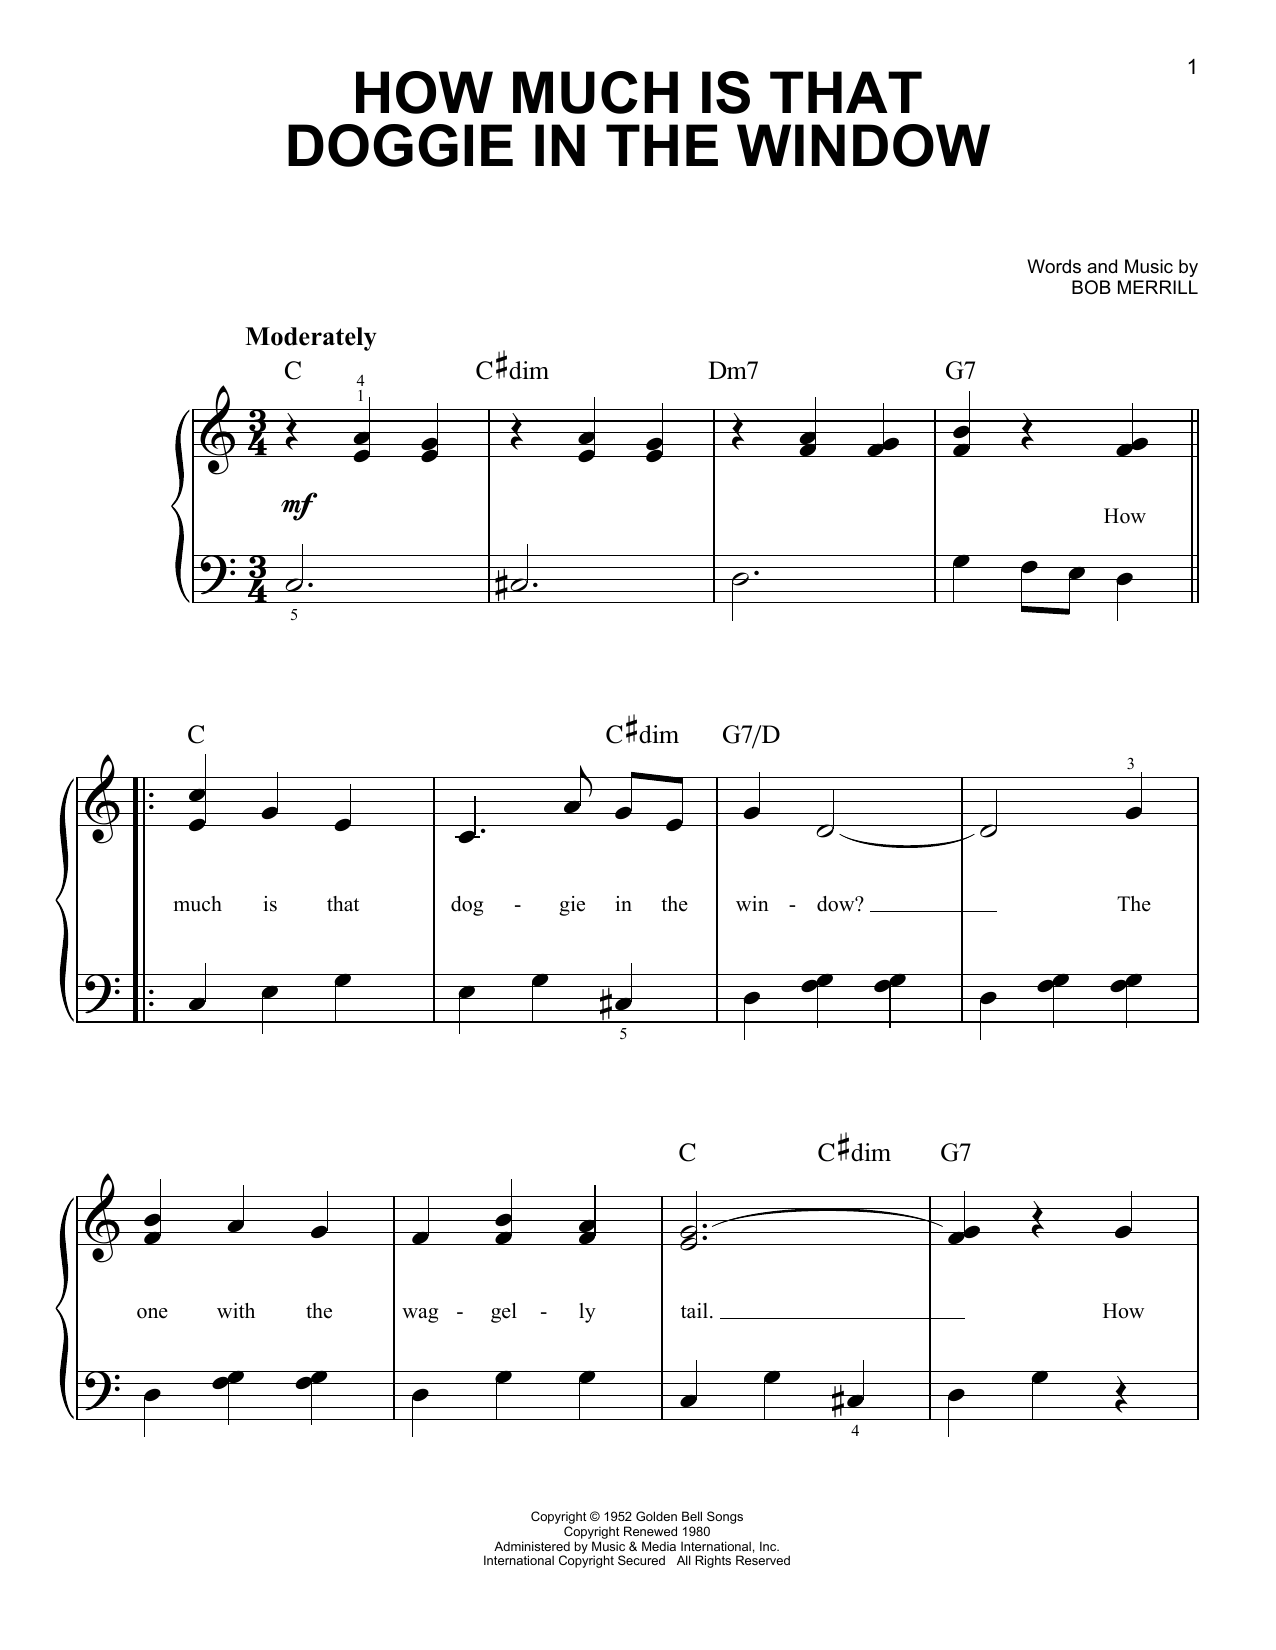 How Much Is That Doggie In The Window sheet music for piano solo (chords) by Bob Merrill